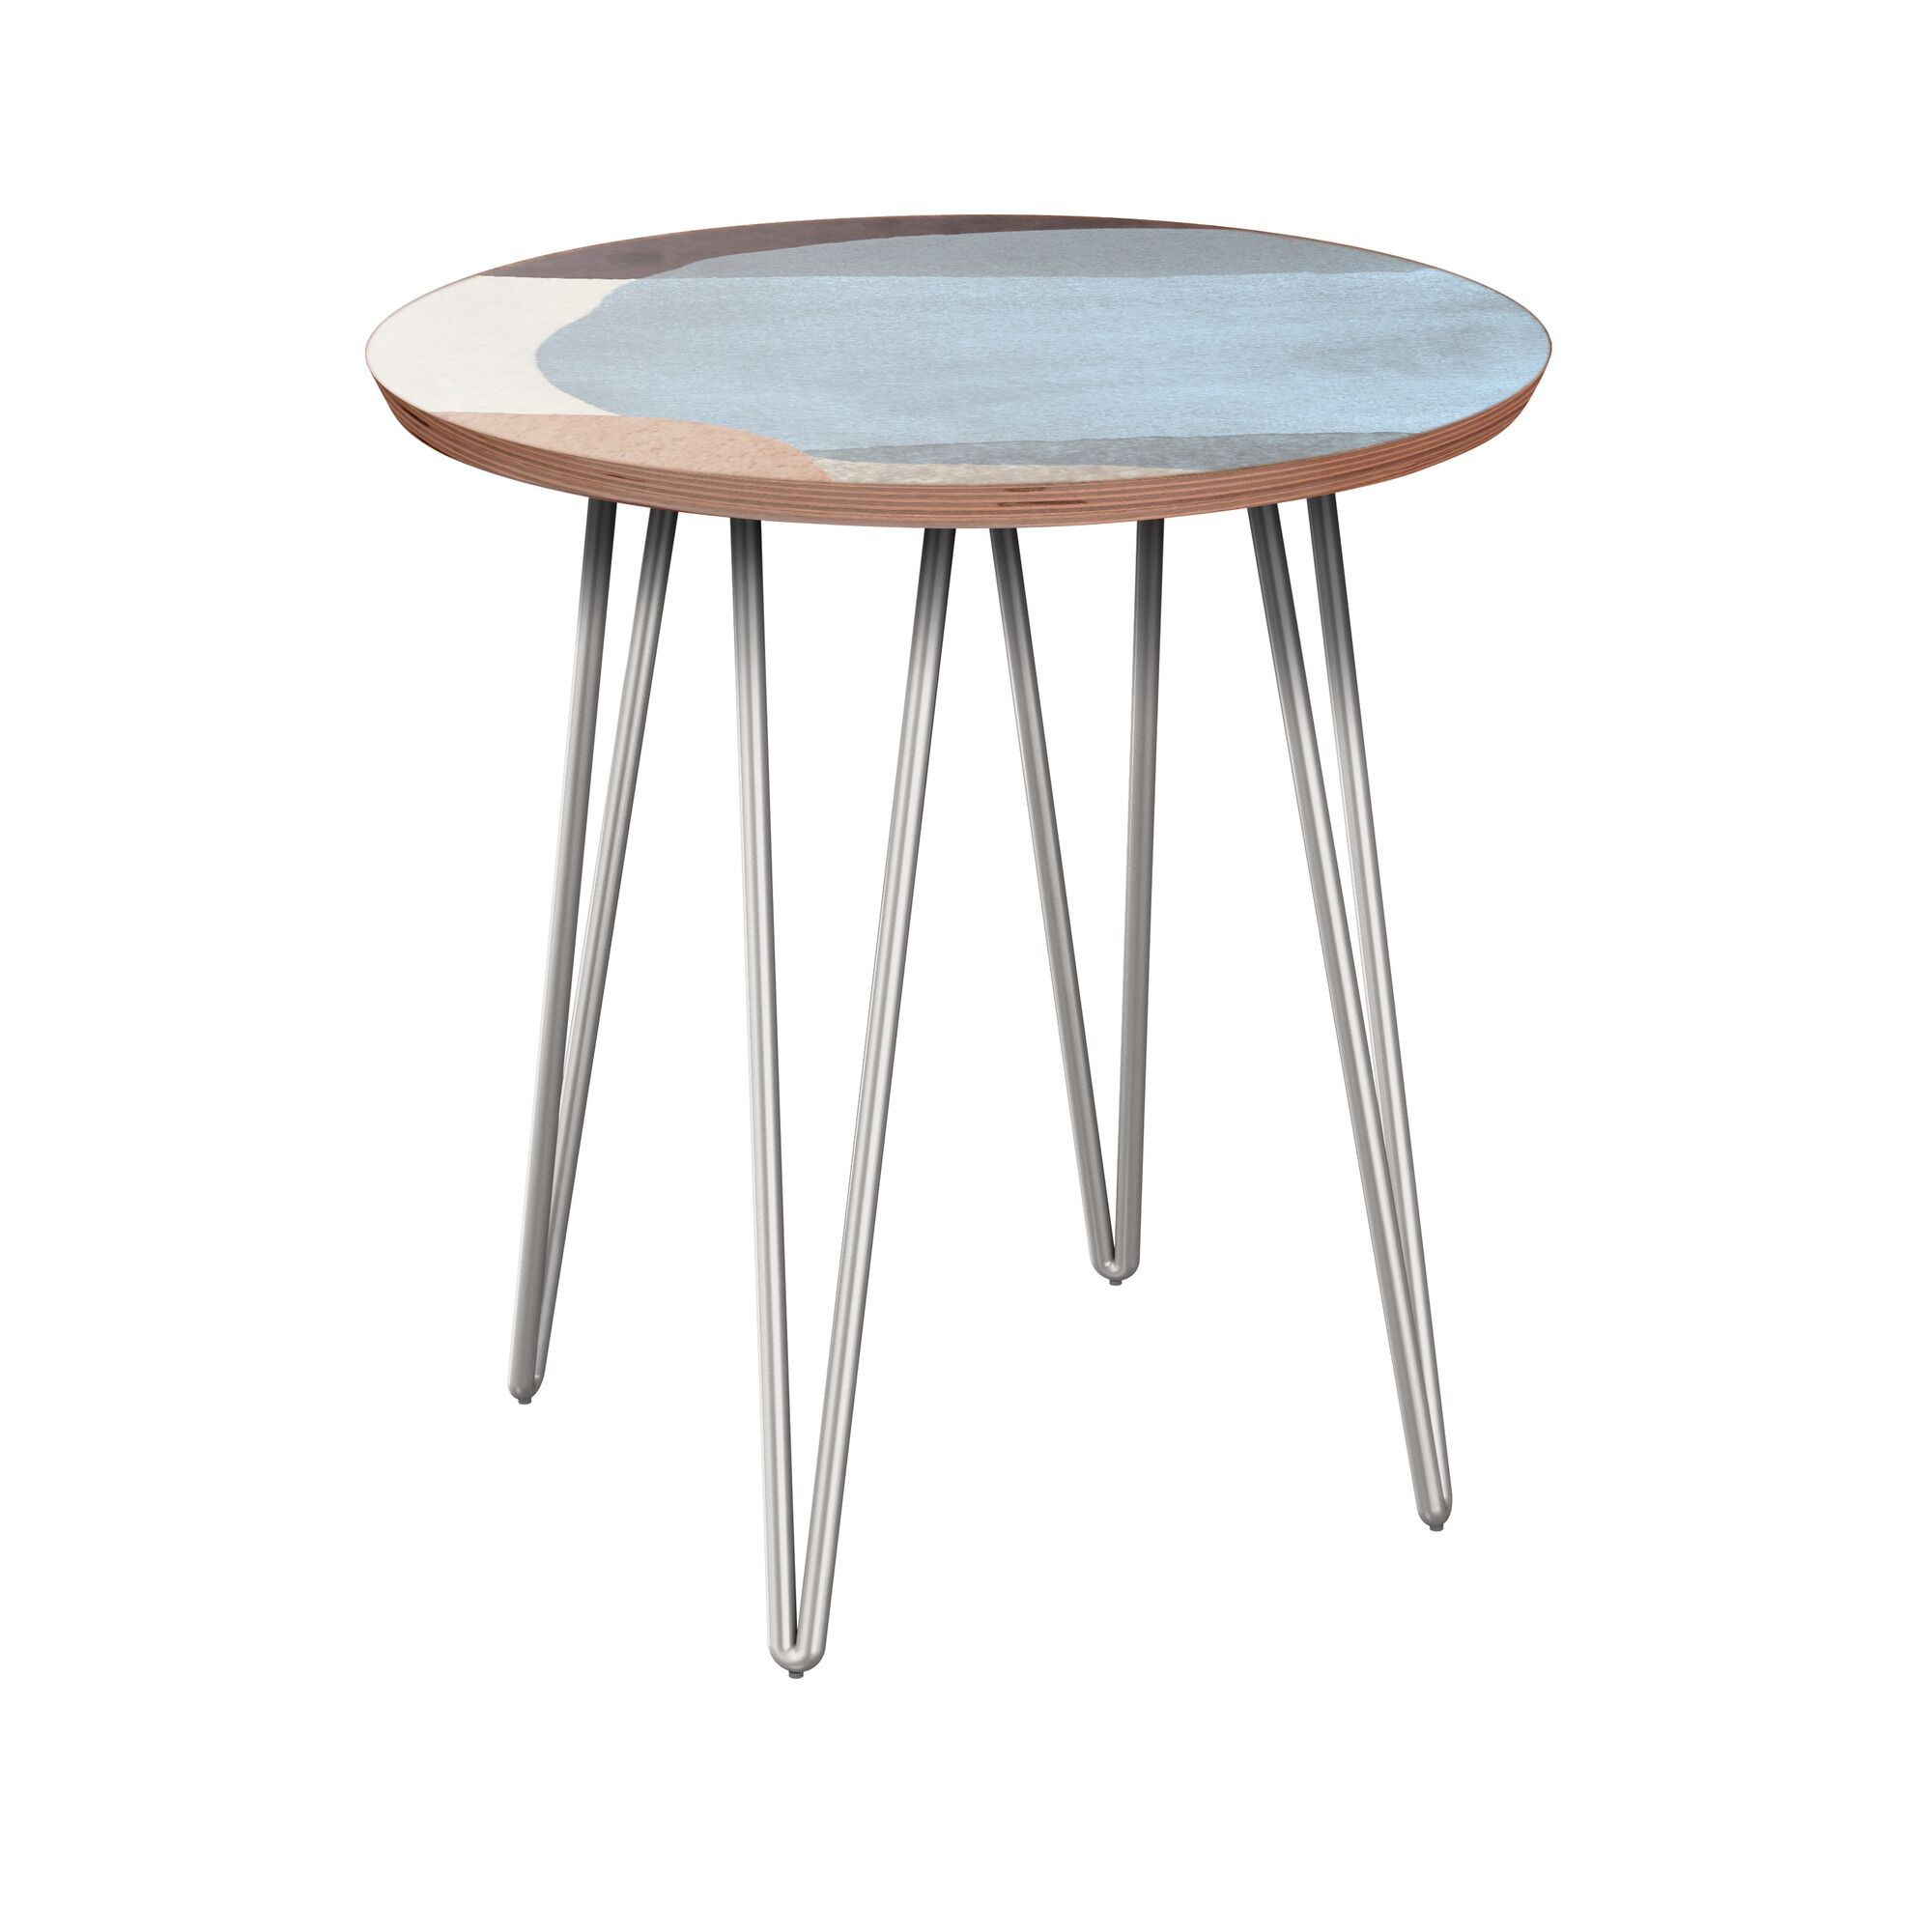 Eslick End Table Table Base Color: Chrome, Table Top Color: Walnut